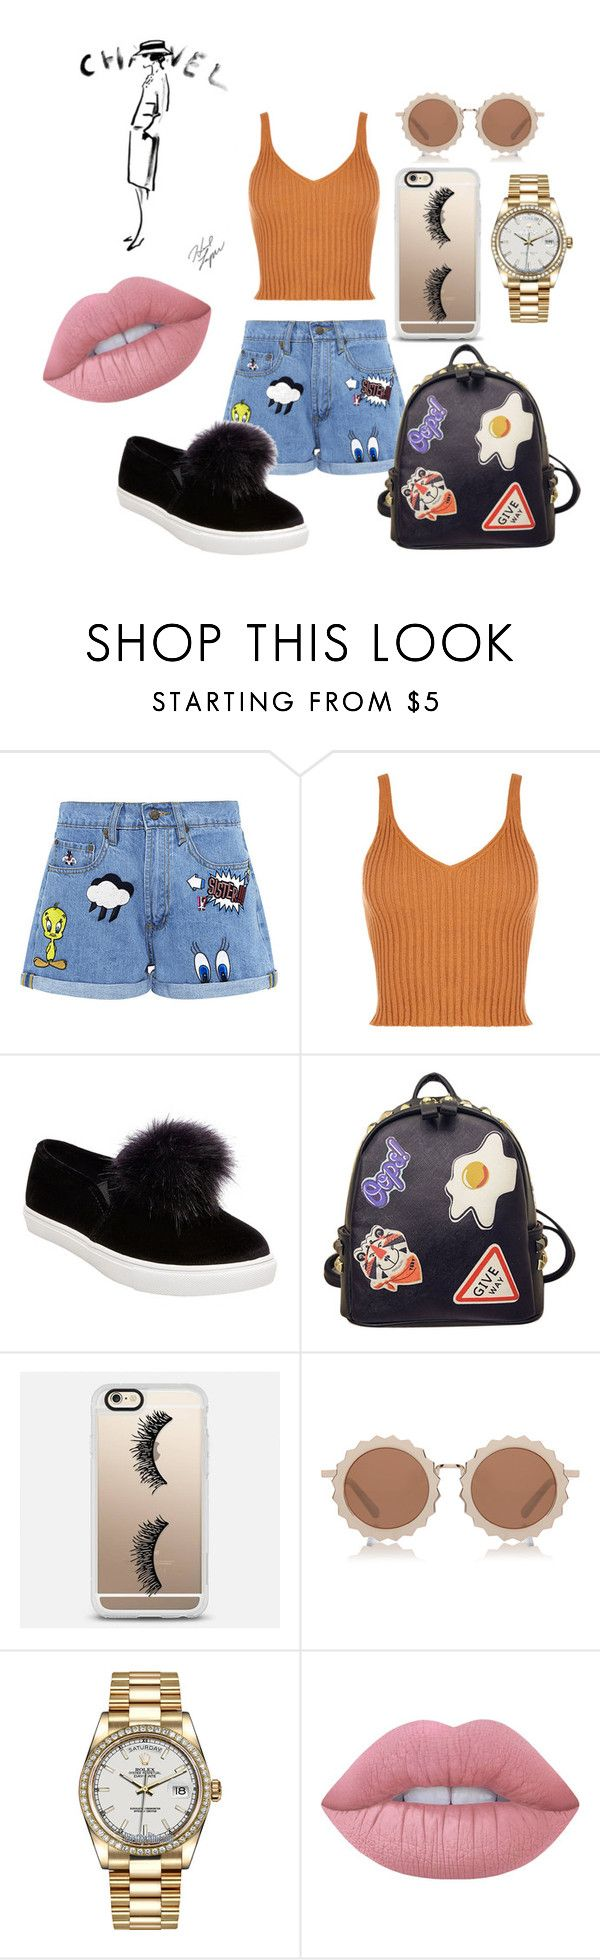 """Danny"" by aaliyah-parker ❤ liked on Polyvore featuring Paul & Joe Sister, Betsey Johnson, WithChic, Casetify, House of Holland, Rolex, Chanel and Lime Crime"